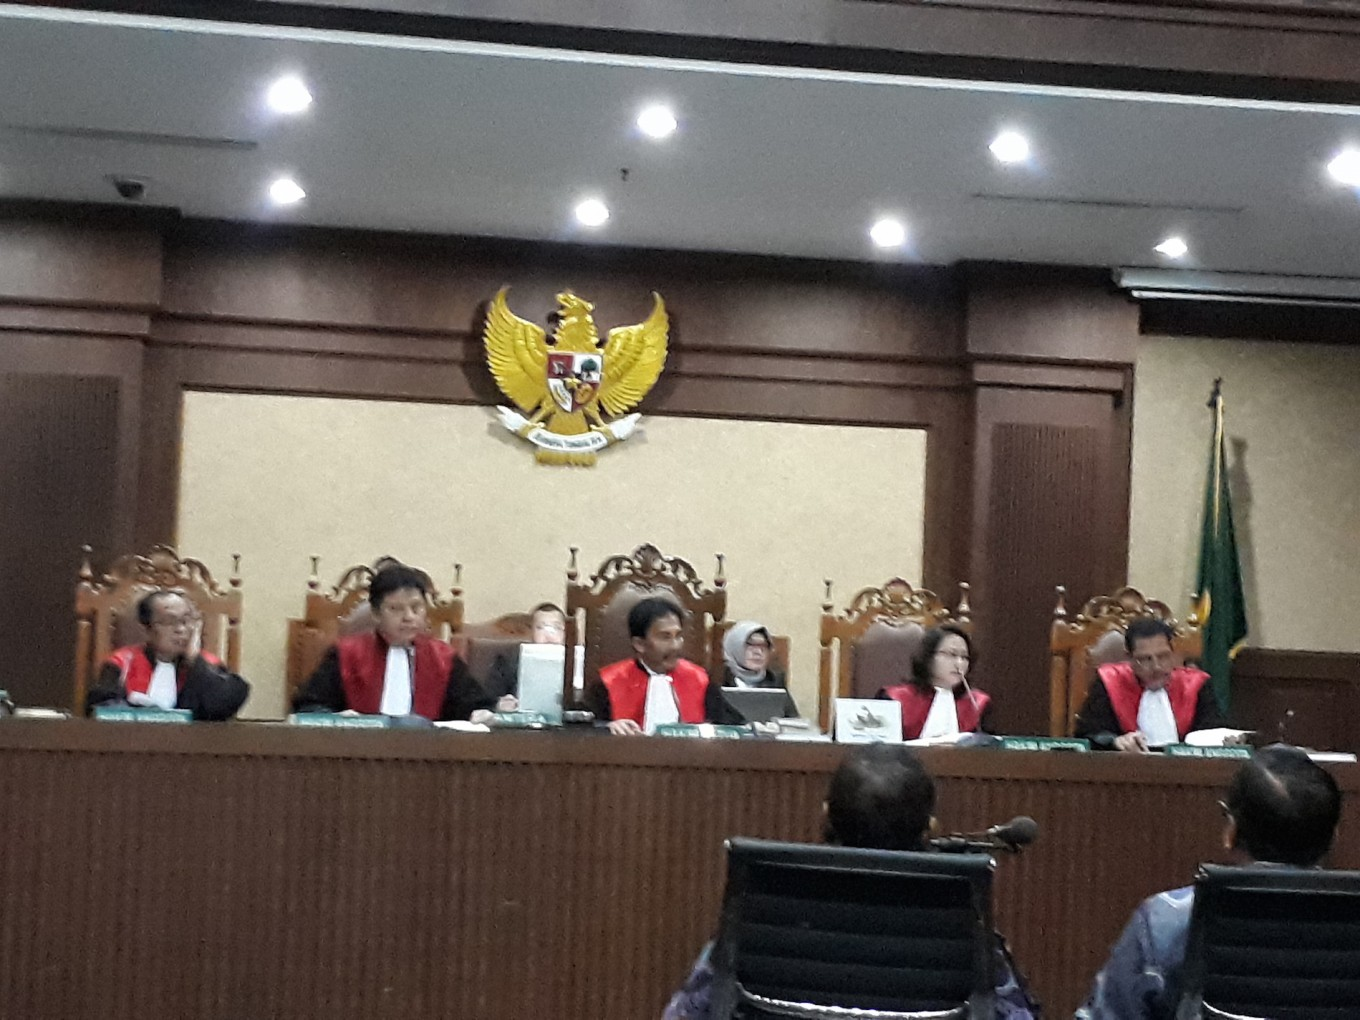 Golkar politician fights back after being implicated in e-ID graft